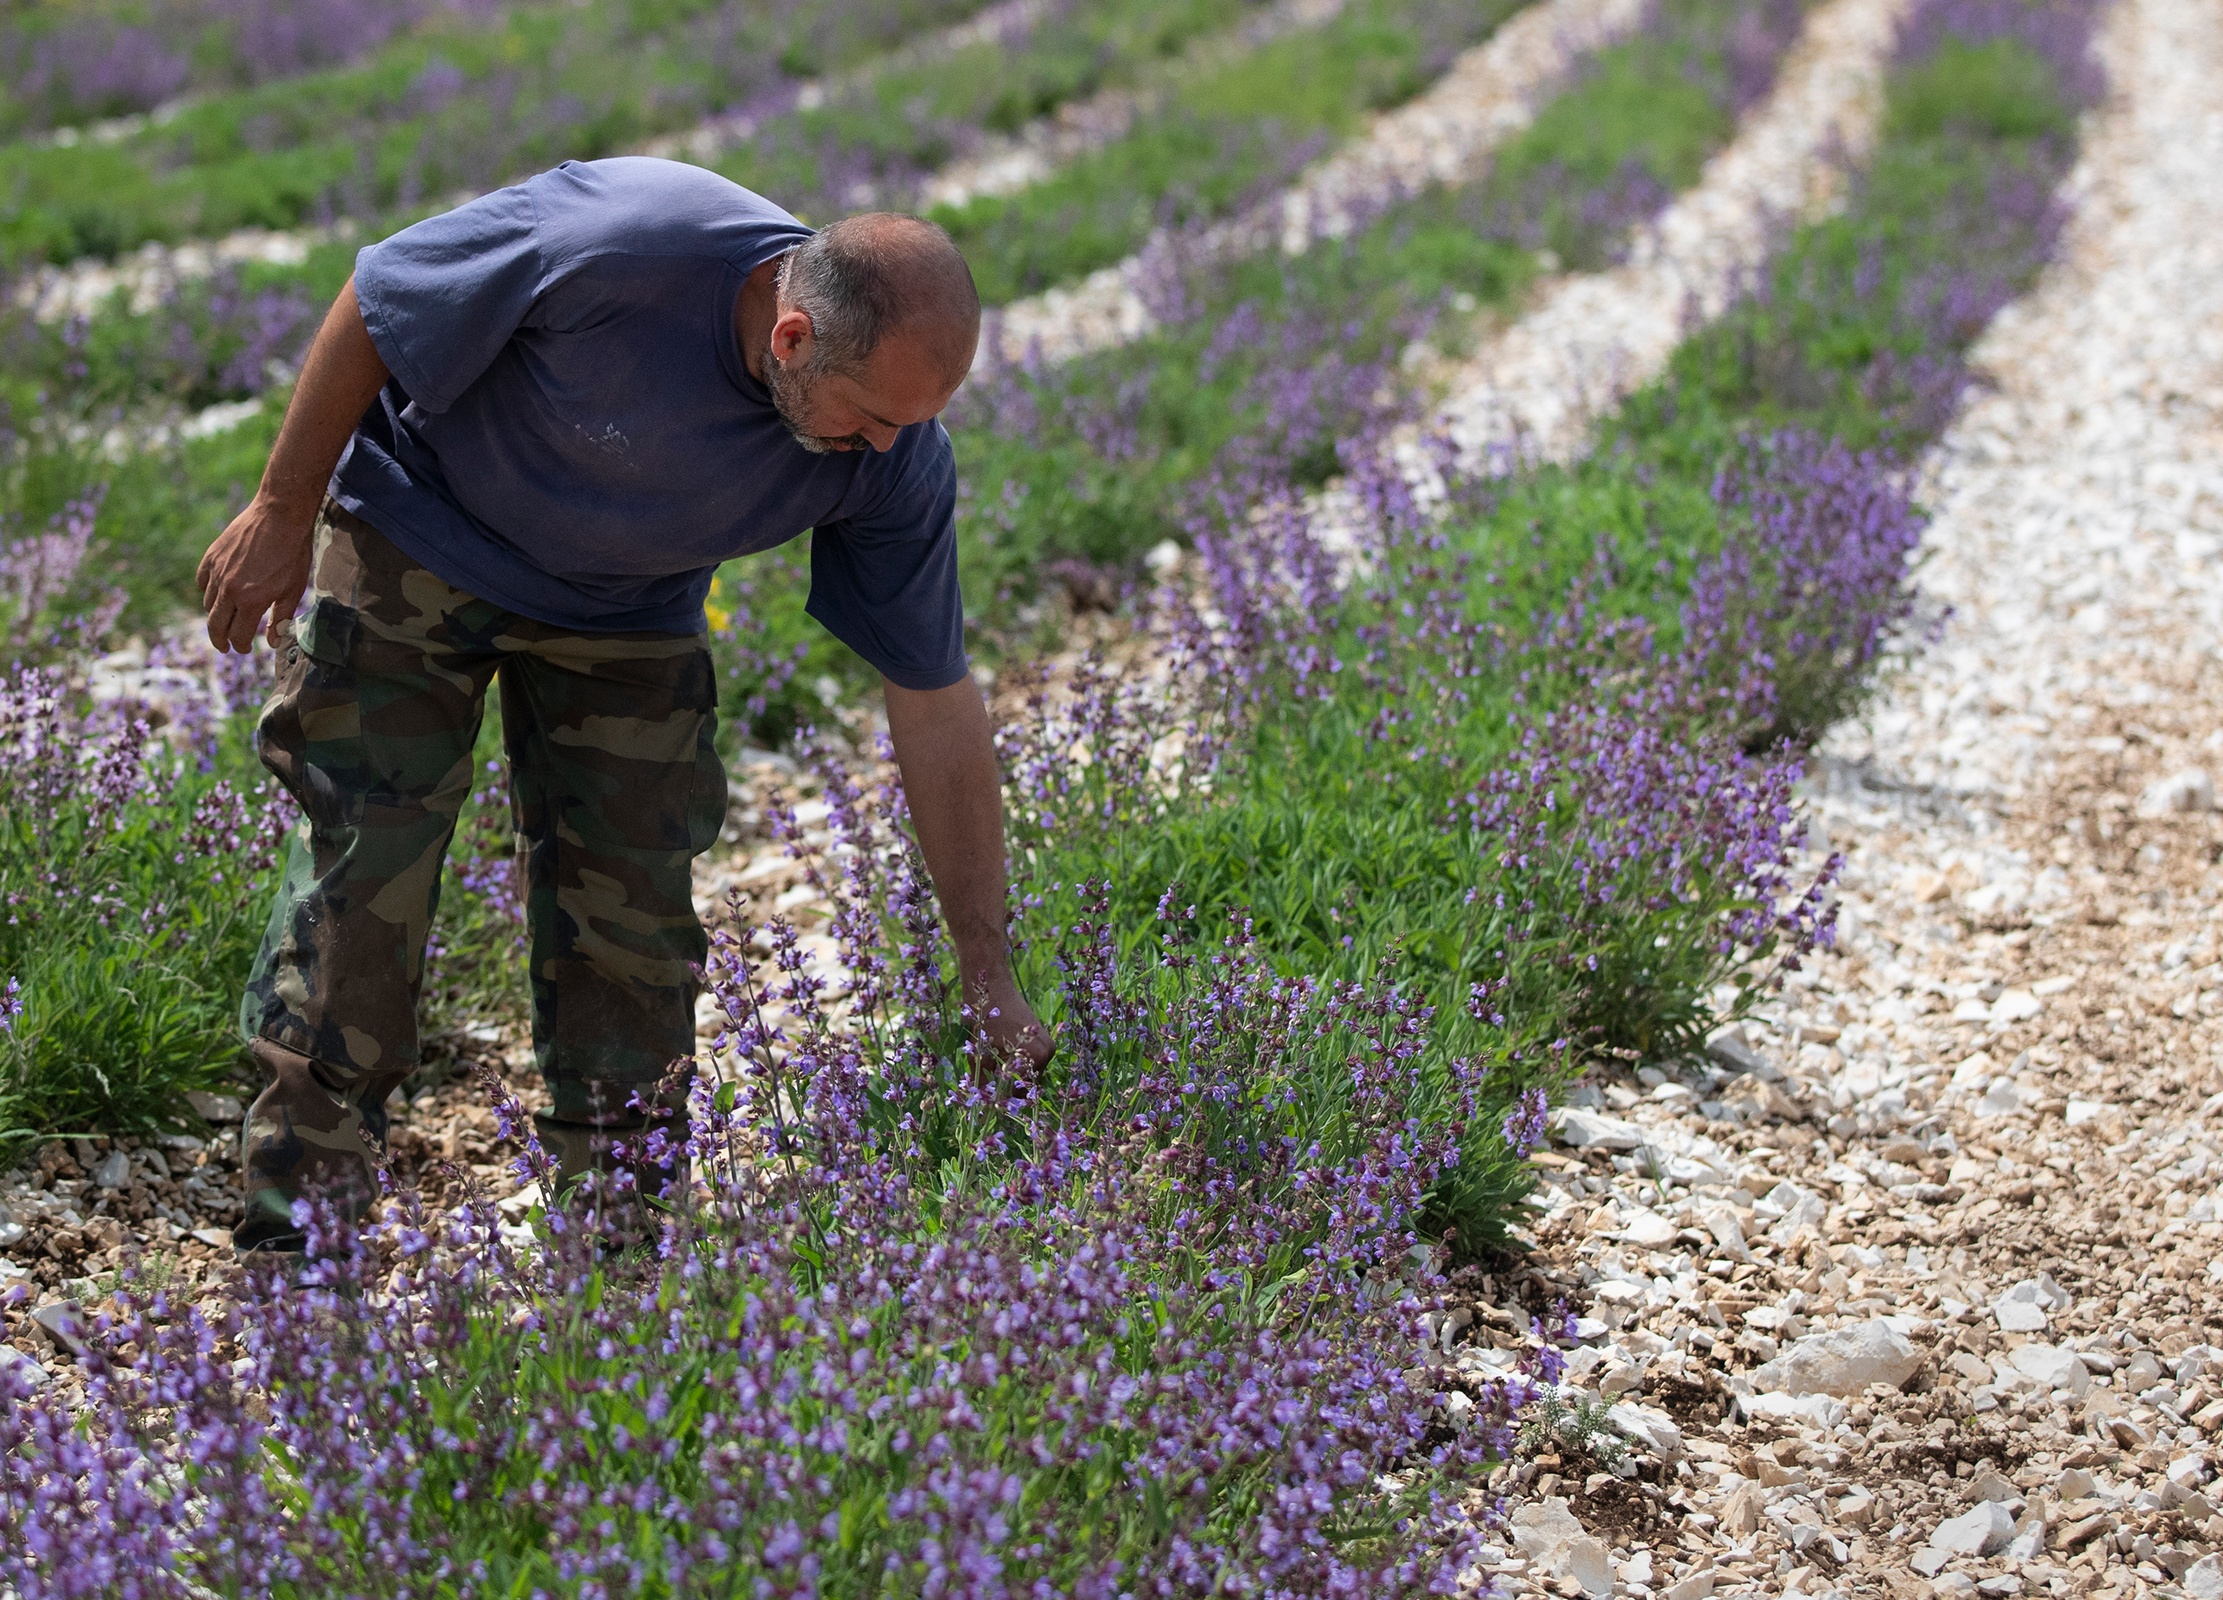 Farmer leans over to check the scent of his blooming sage plants in a field